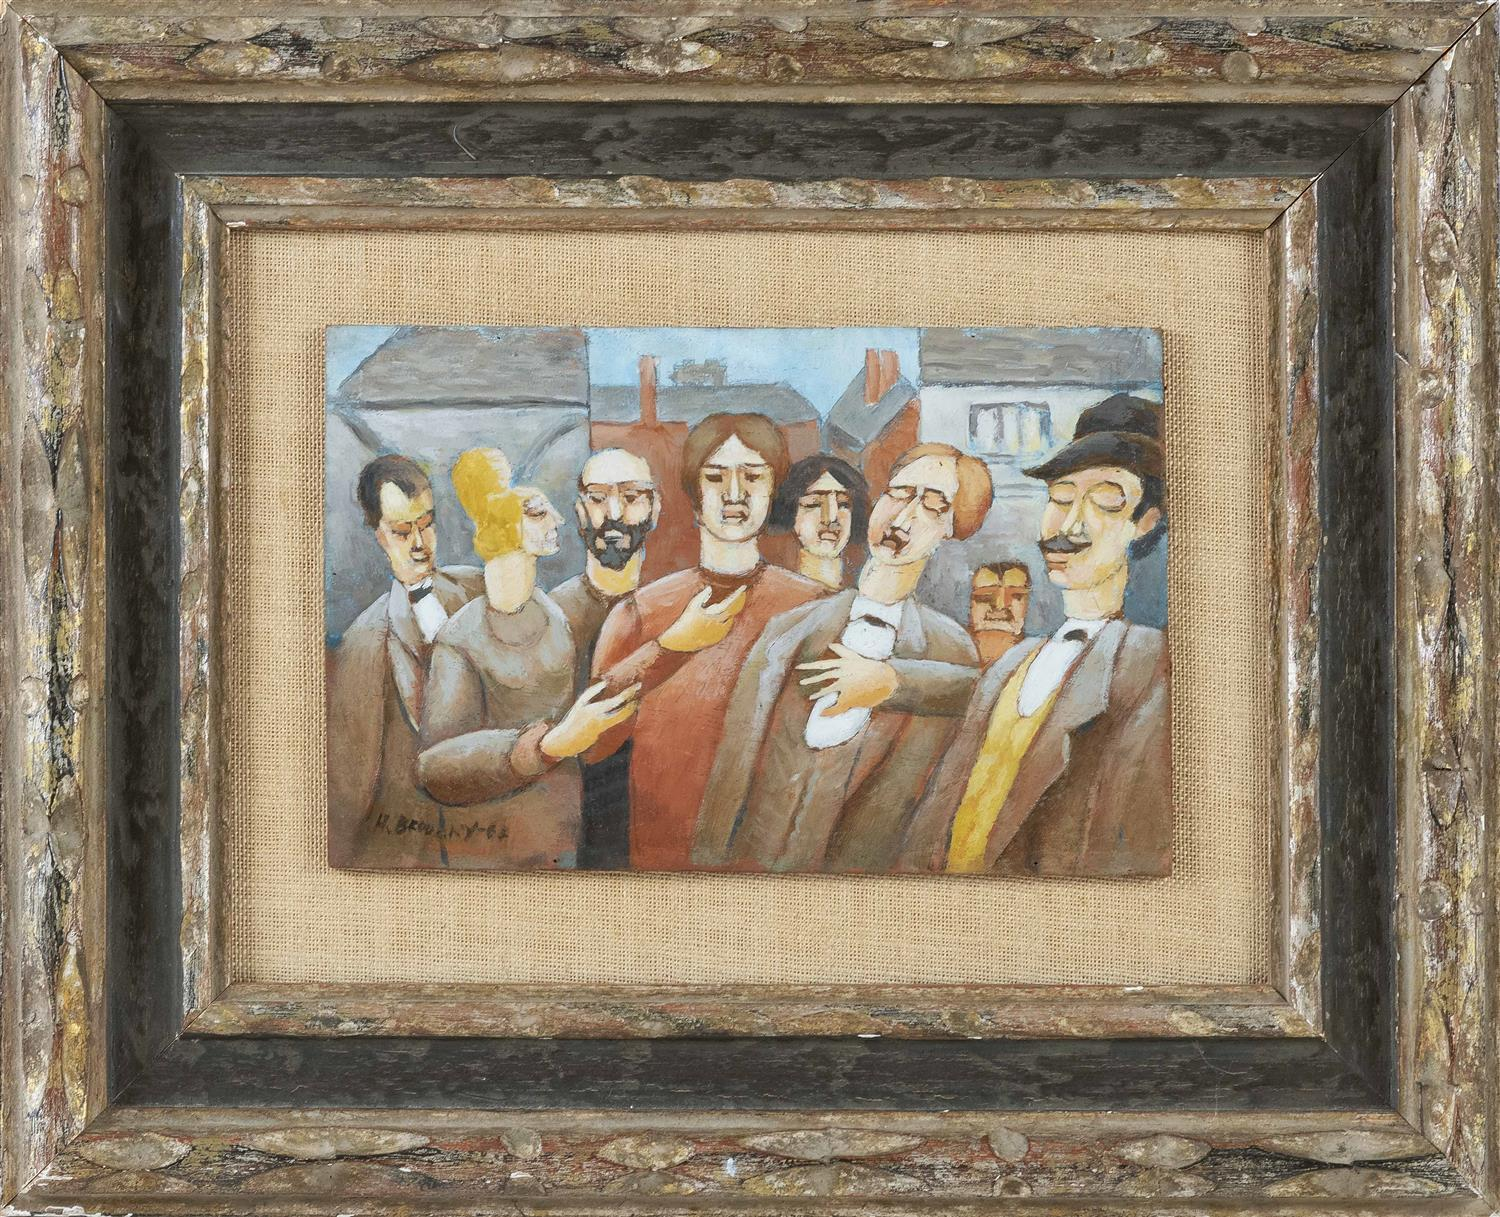 """HORACE BRODZKY, New York/Australia, 1885-1969, Figures in a village., Oil on panel, 5.5"""" x 8.5"""". Framed 12"""" x 15""""."""